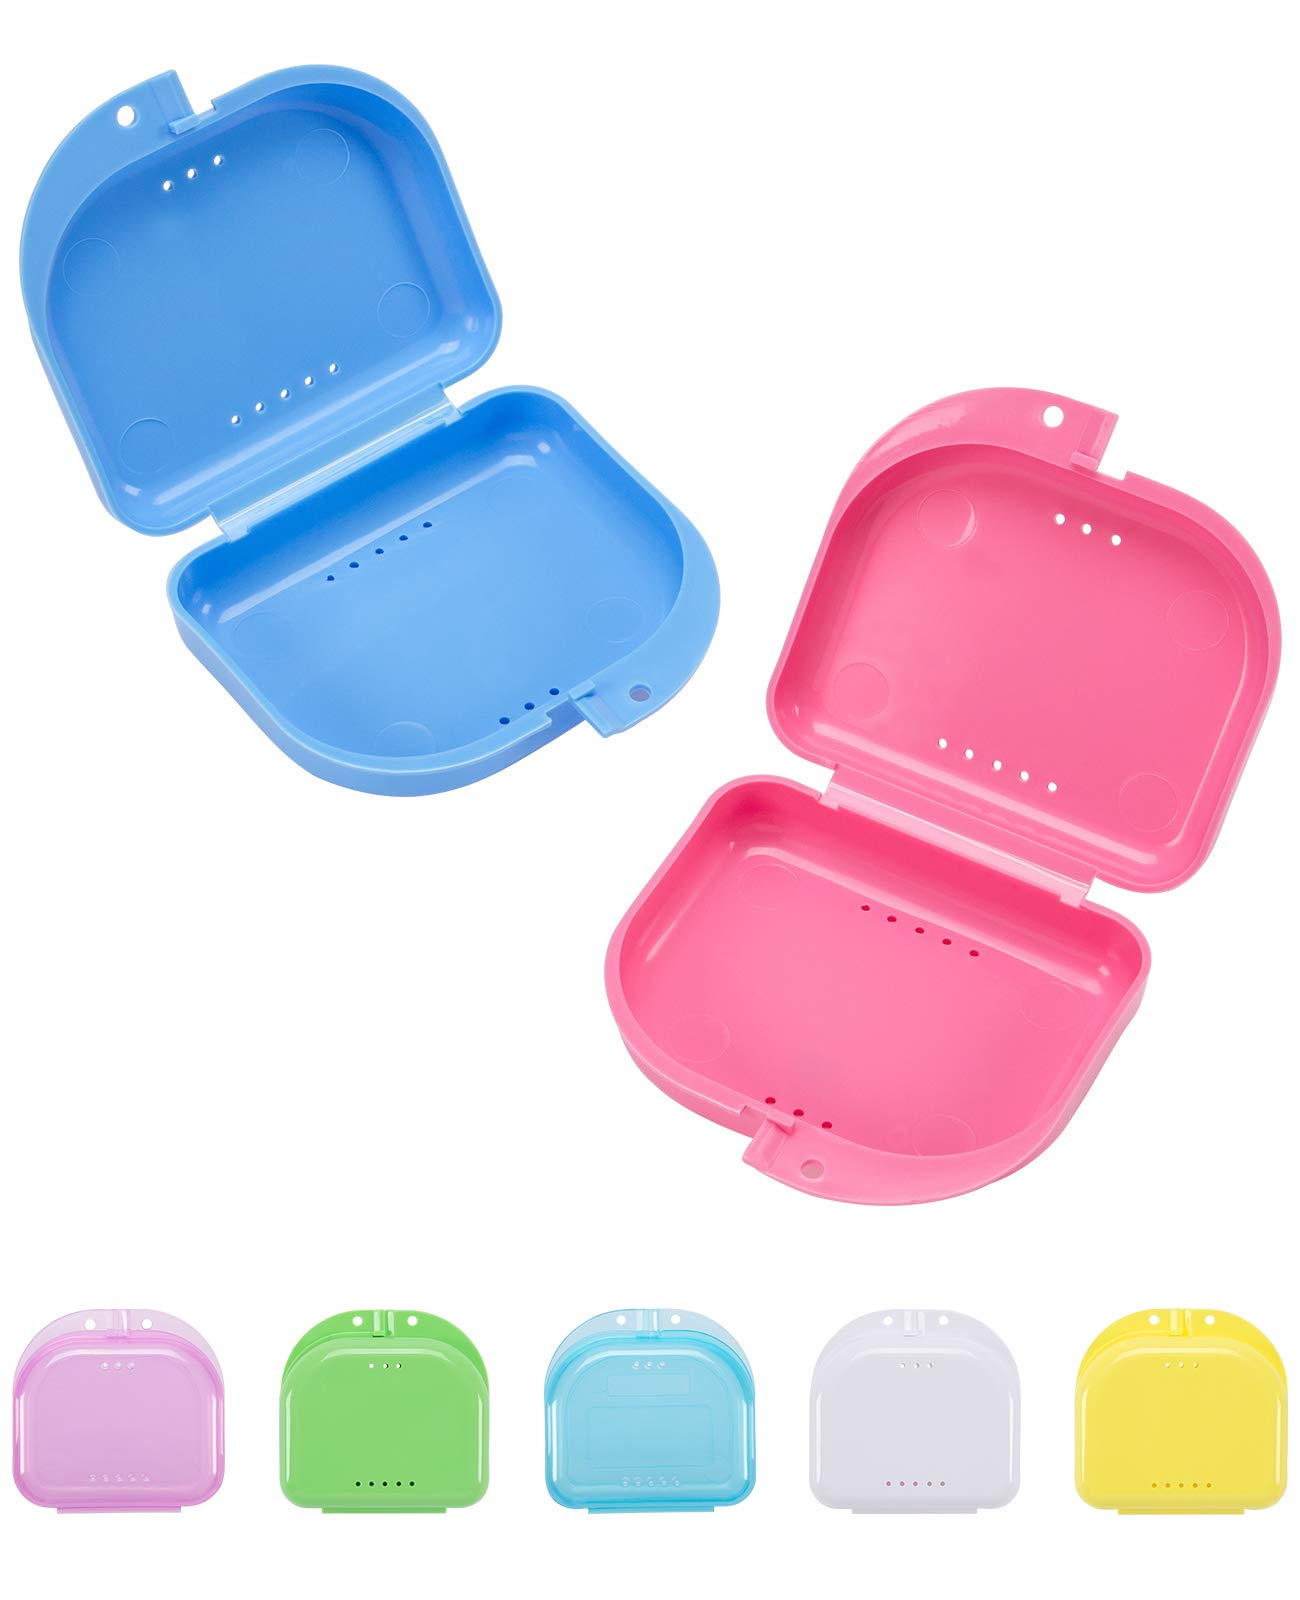 Madholly 7 pieces Orthodontic Retainer Case, Mouth Guard Case, Denture Storage Container Box With Vent Holes